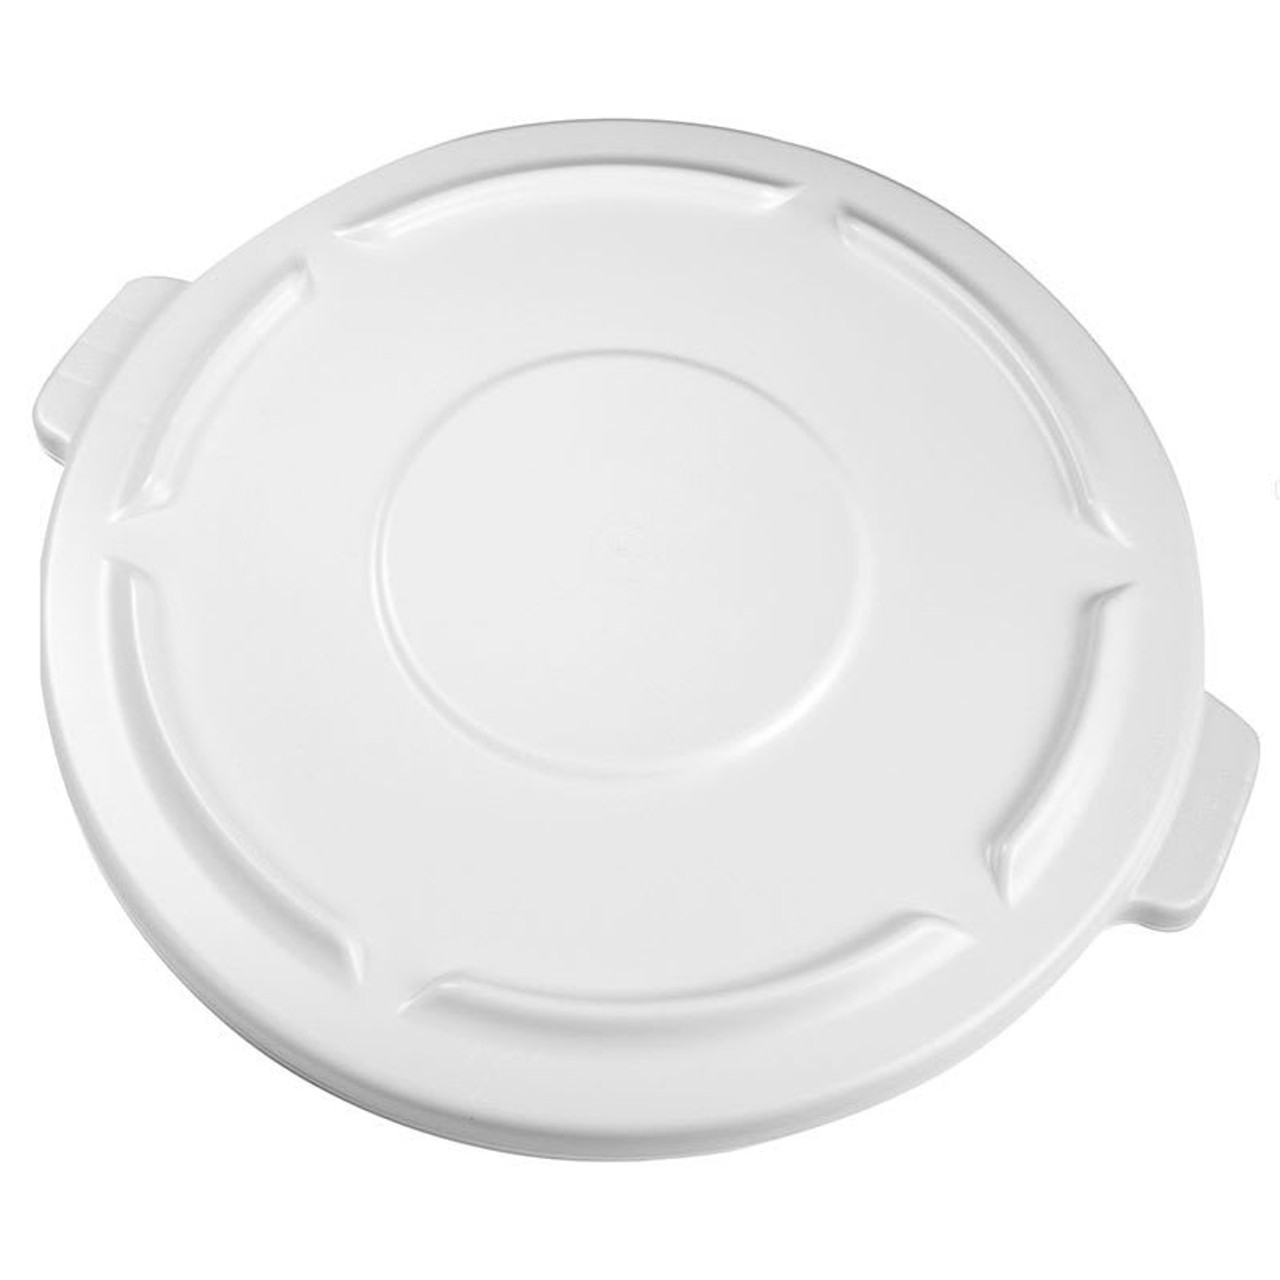 Rubbermaid Brute Lid Fits - White